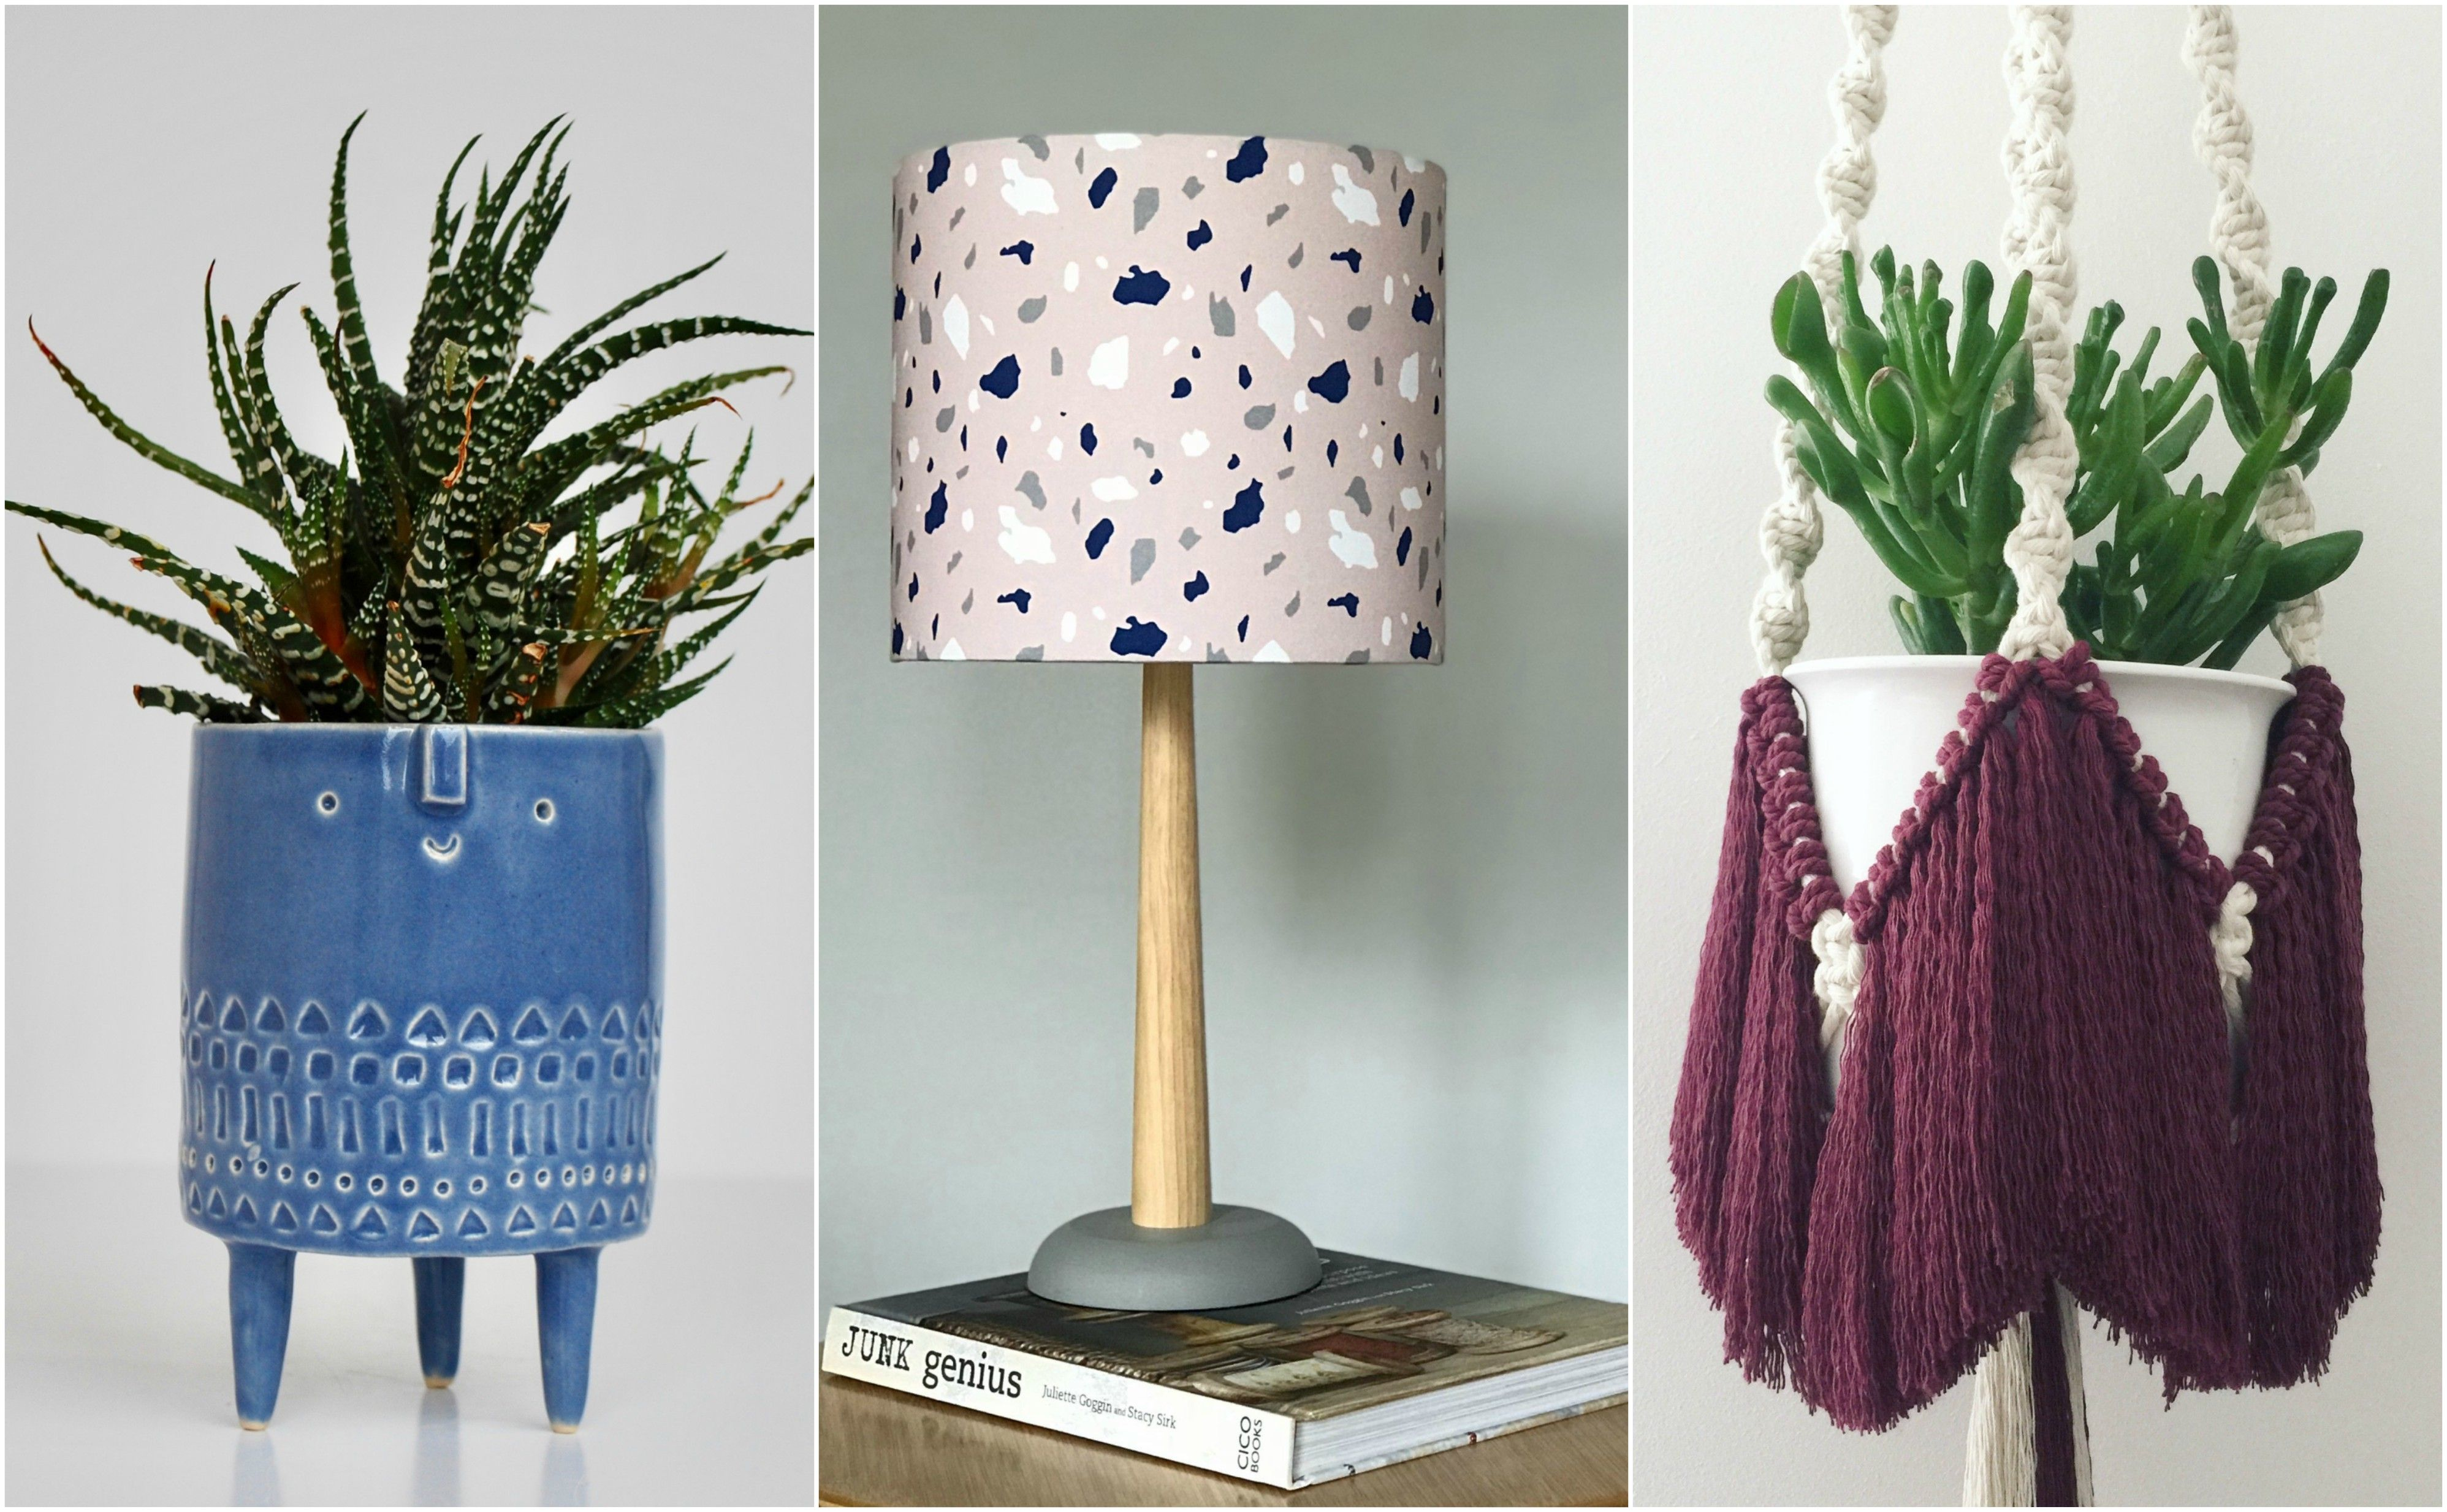 5 hot home decor trends for spring as revealed by etsy rh housebeautiful com